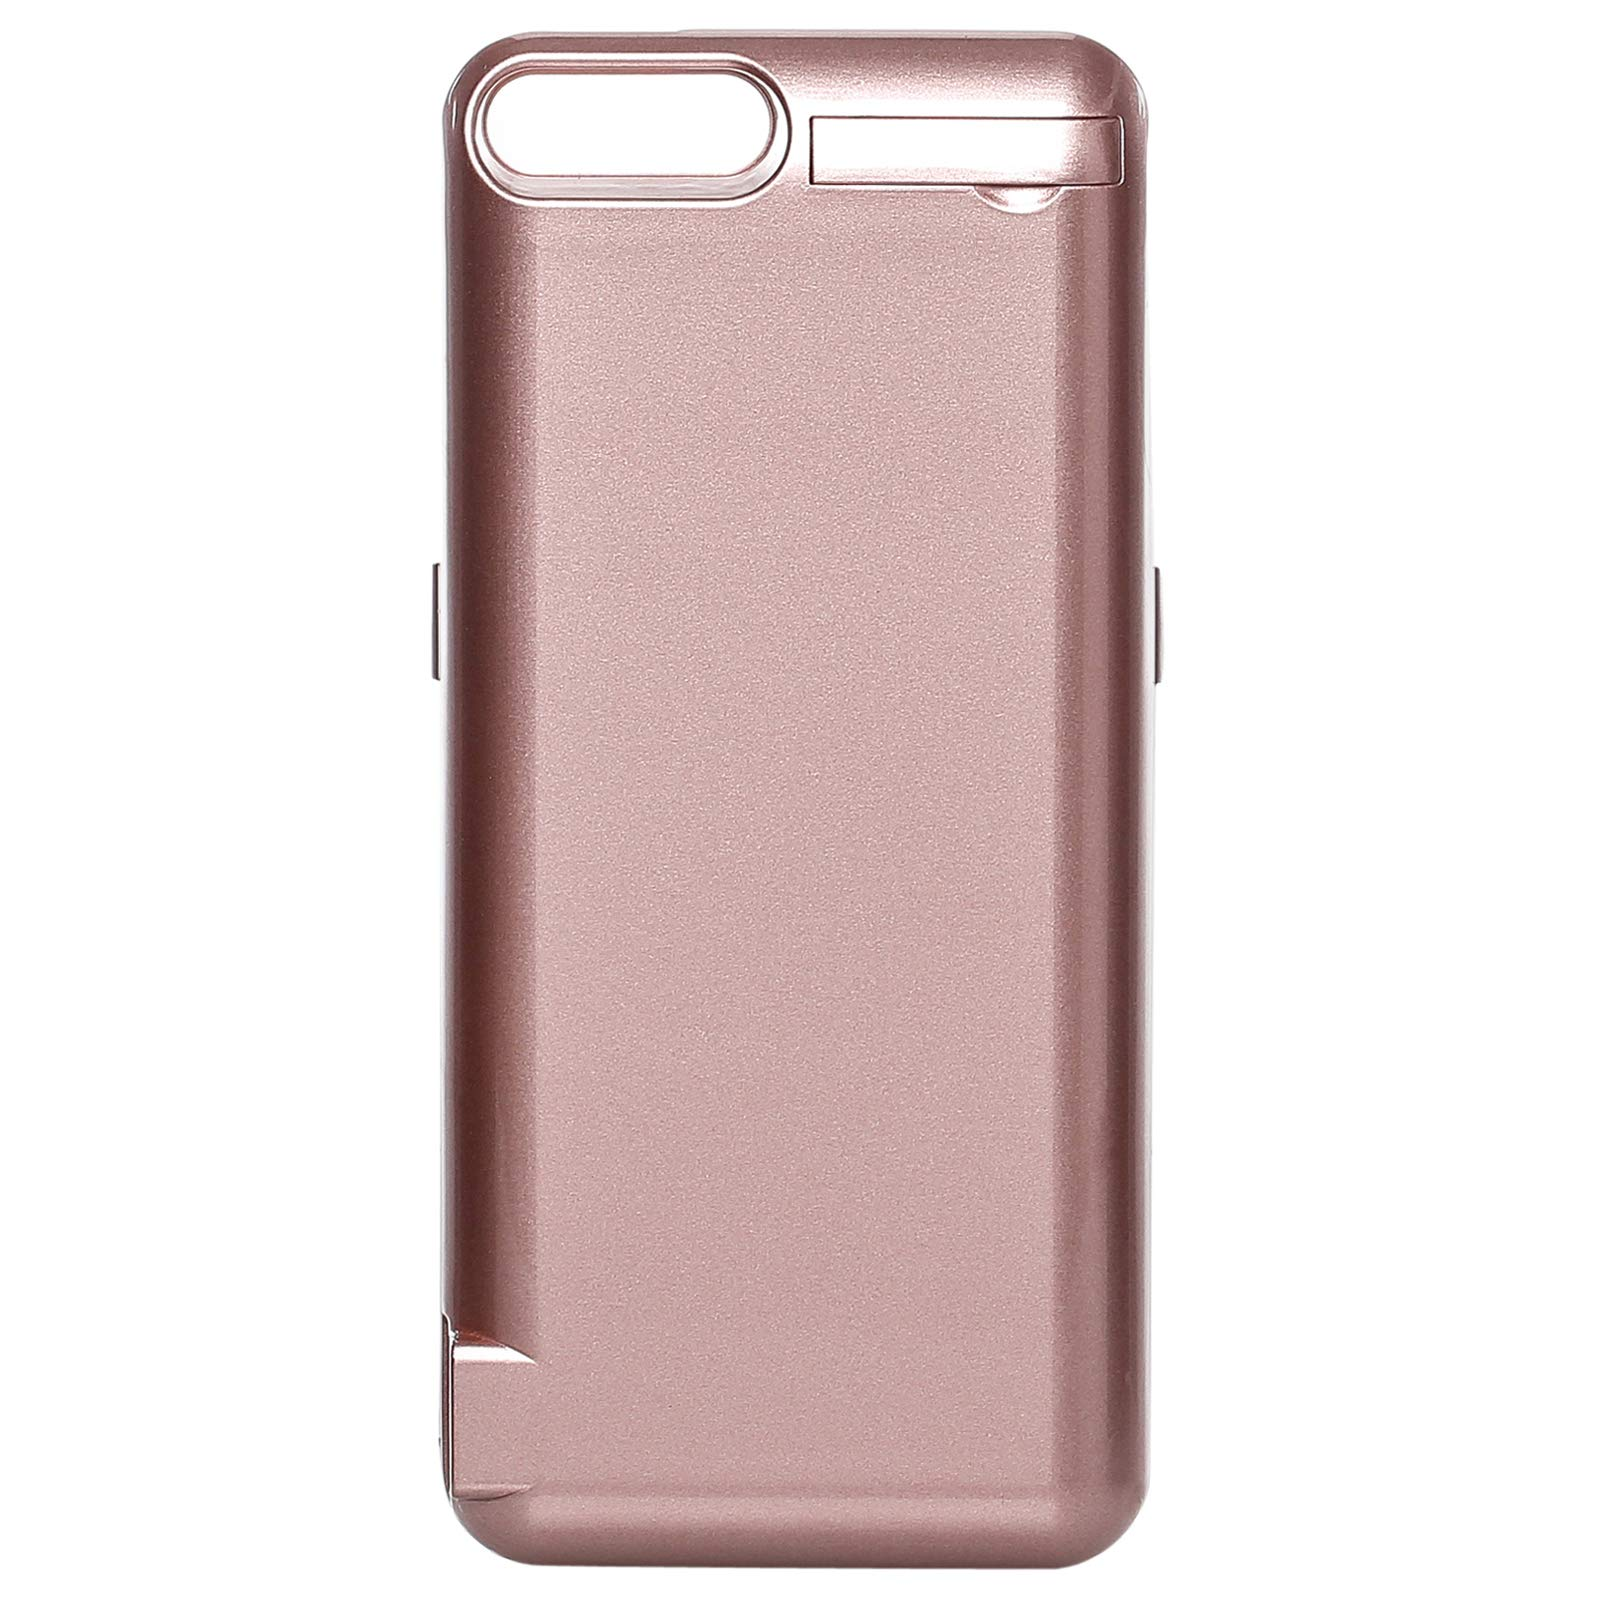 Smart Apple iPhone 7 Plus Power Case, 5.5 Inch , Rose Gold